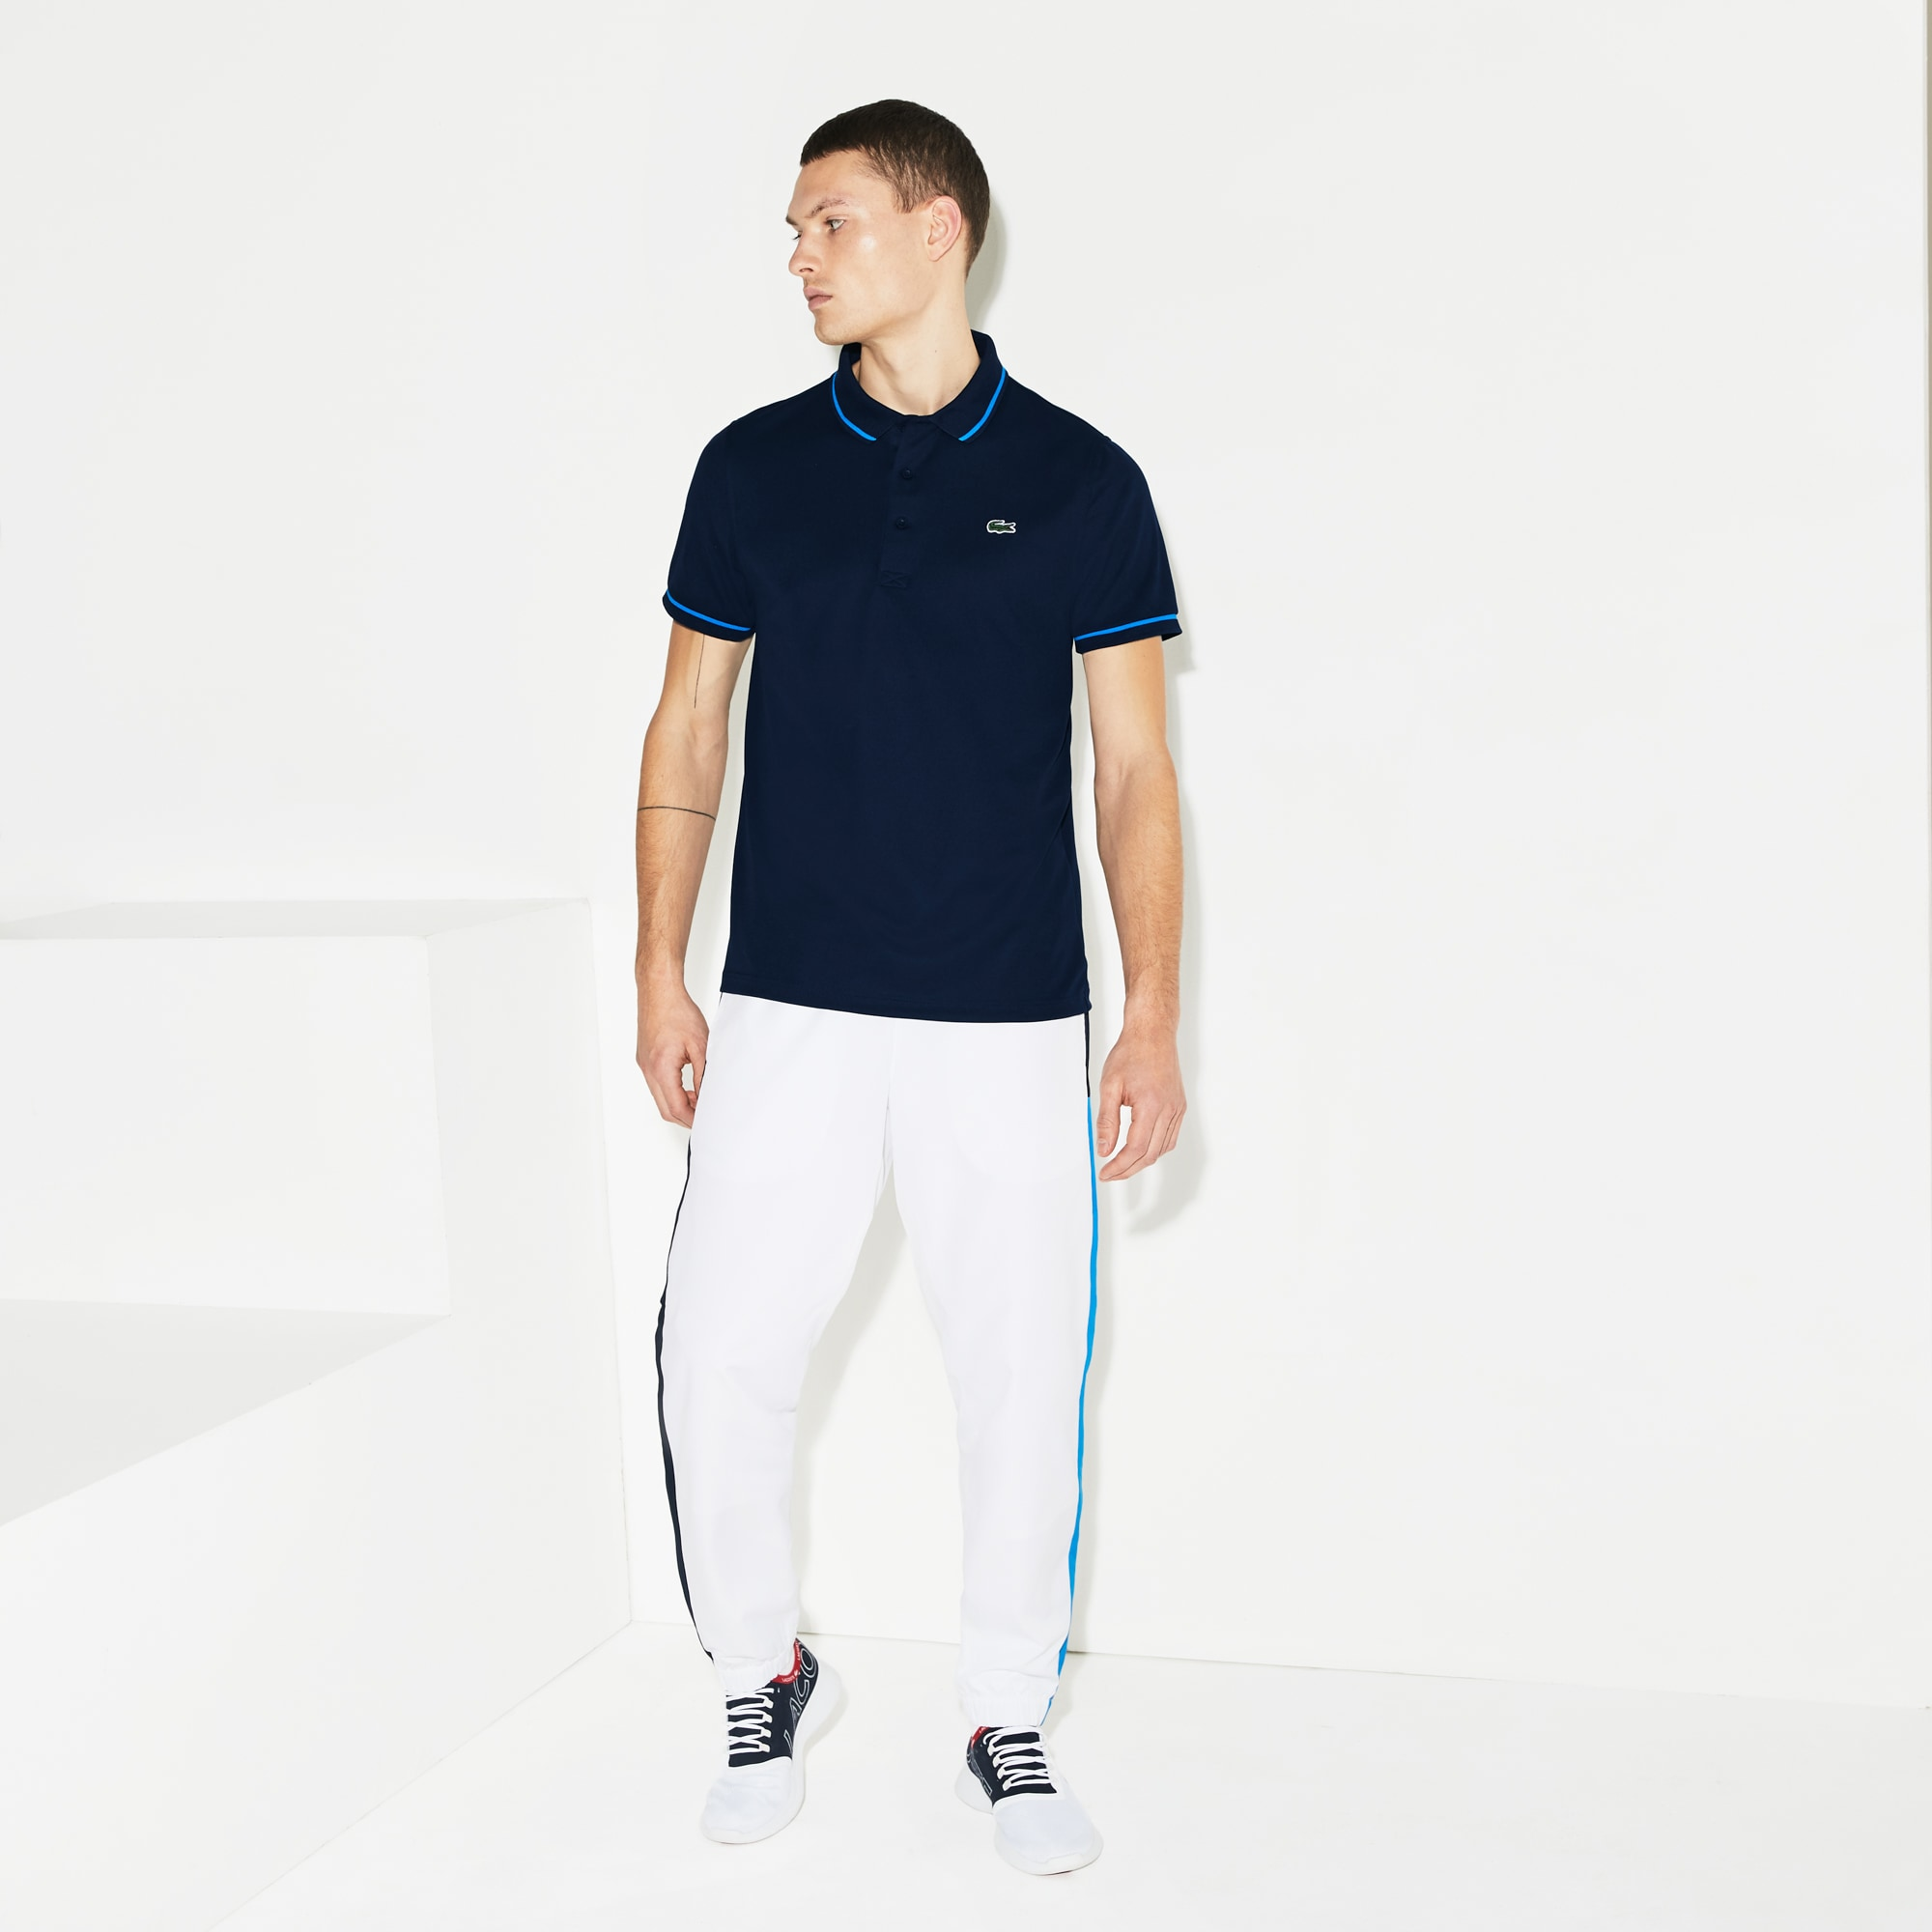 Polo Tennis Lacoste SPORT en piqué technique uni avec piping